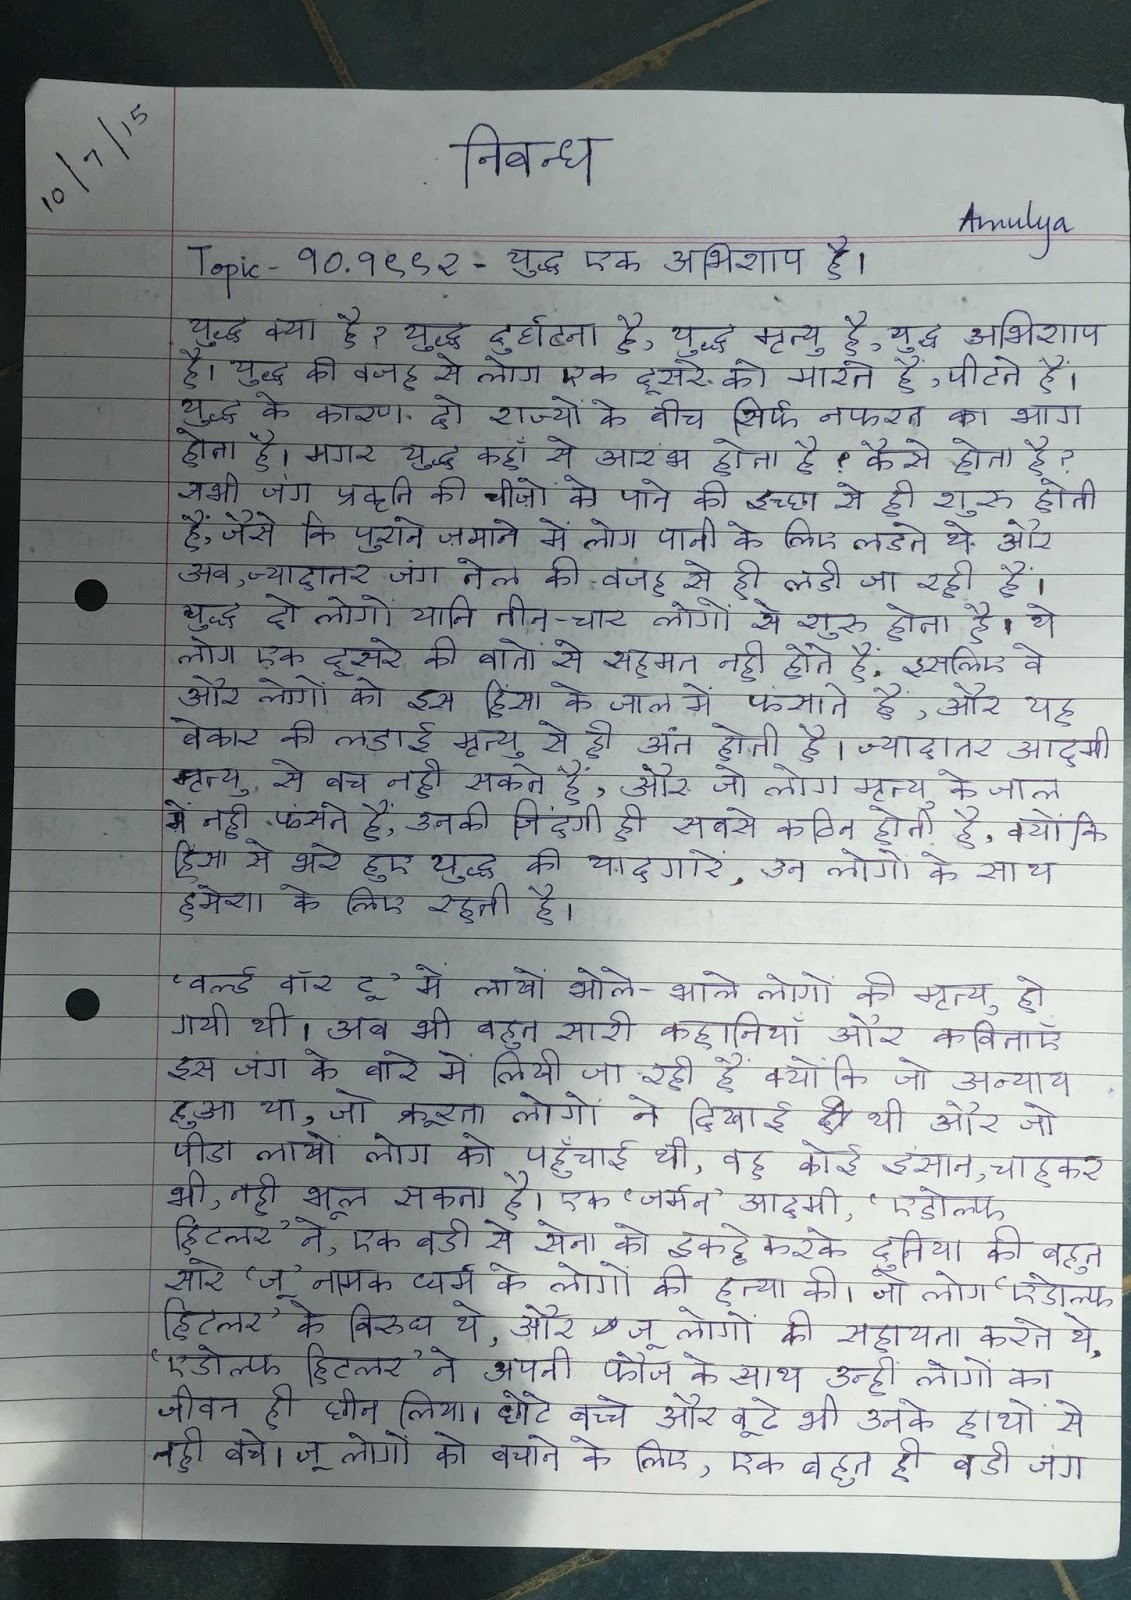 my country essay ccot essay about yourself short essay on mera  short essay on mera bharat mahan my country essay in hindi webdunia